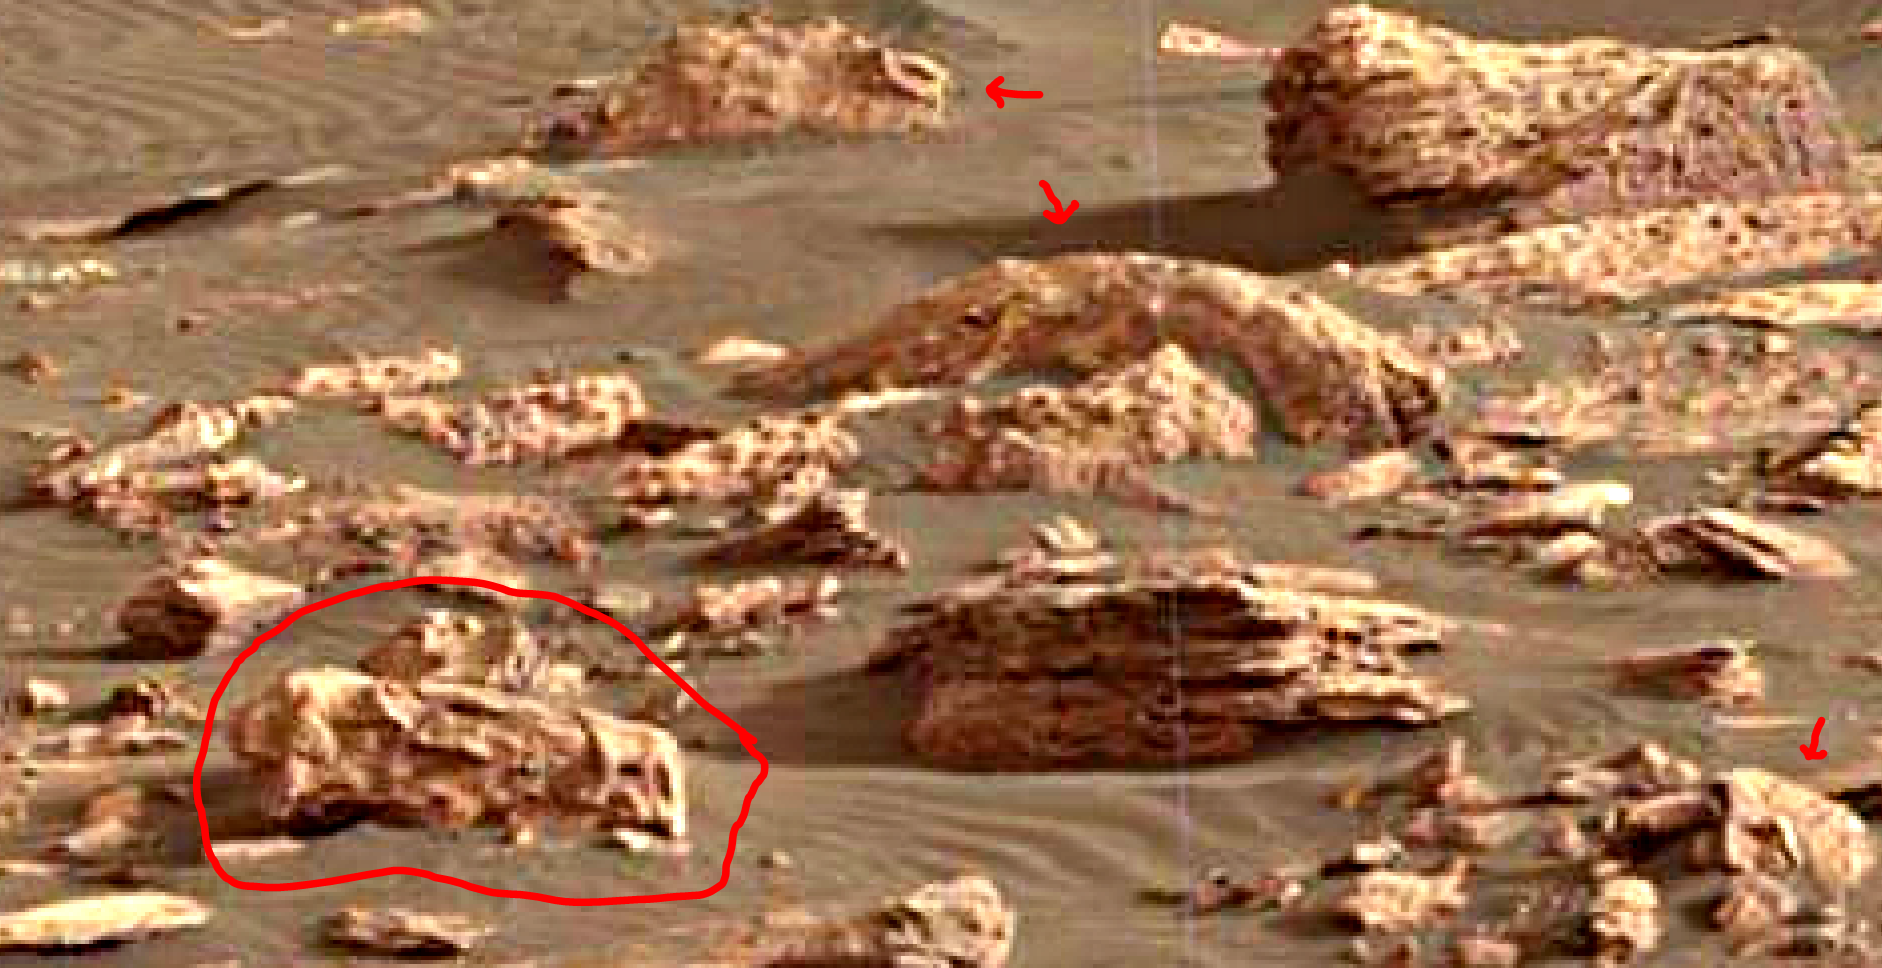 mars-sol-1512-anomaly-artifacts-2-was-life-on-mars